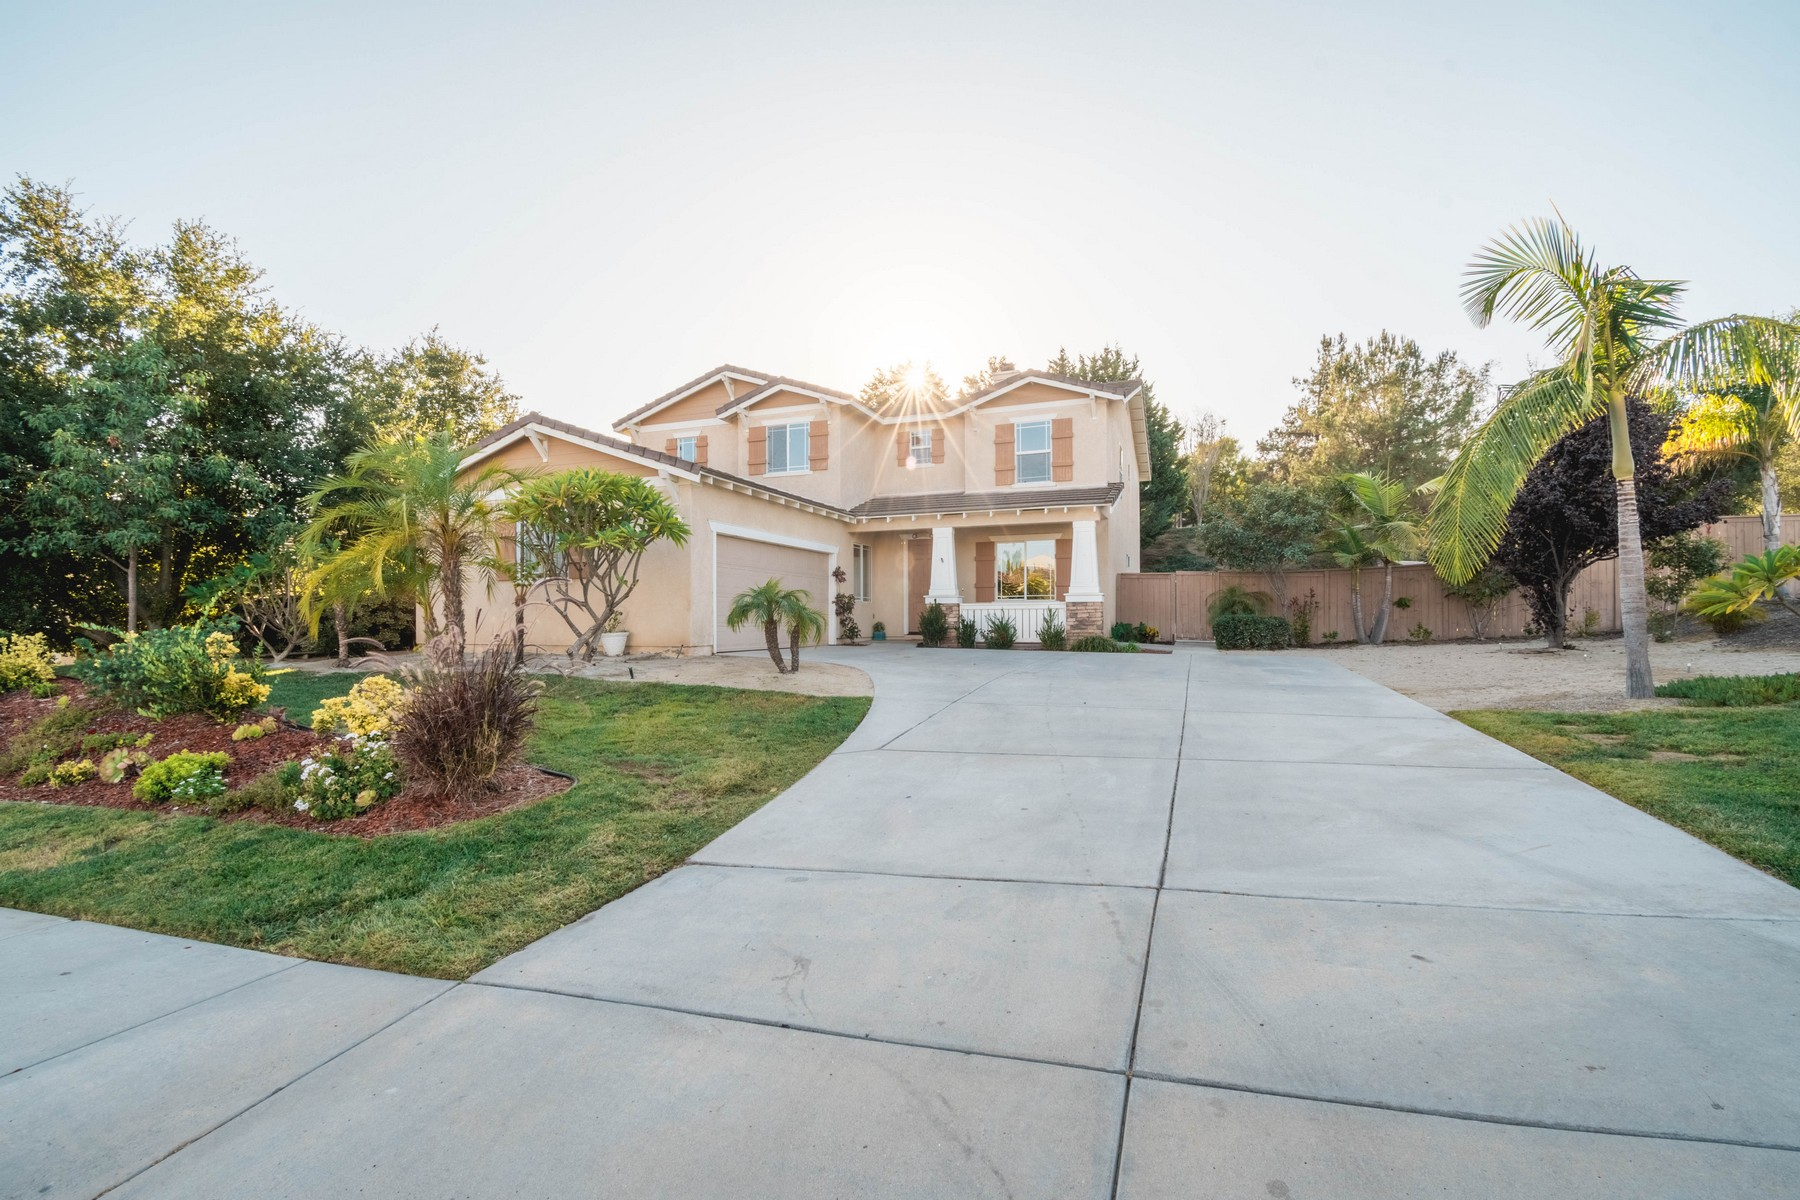 Single Family Homes for Sale at 5526 Nanday Court 5526 Nanday Ct Oceanside, California 92057 United States